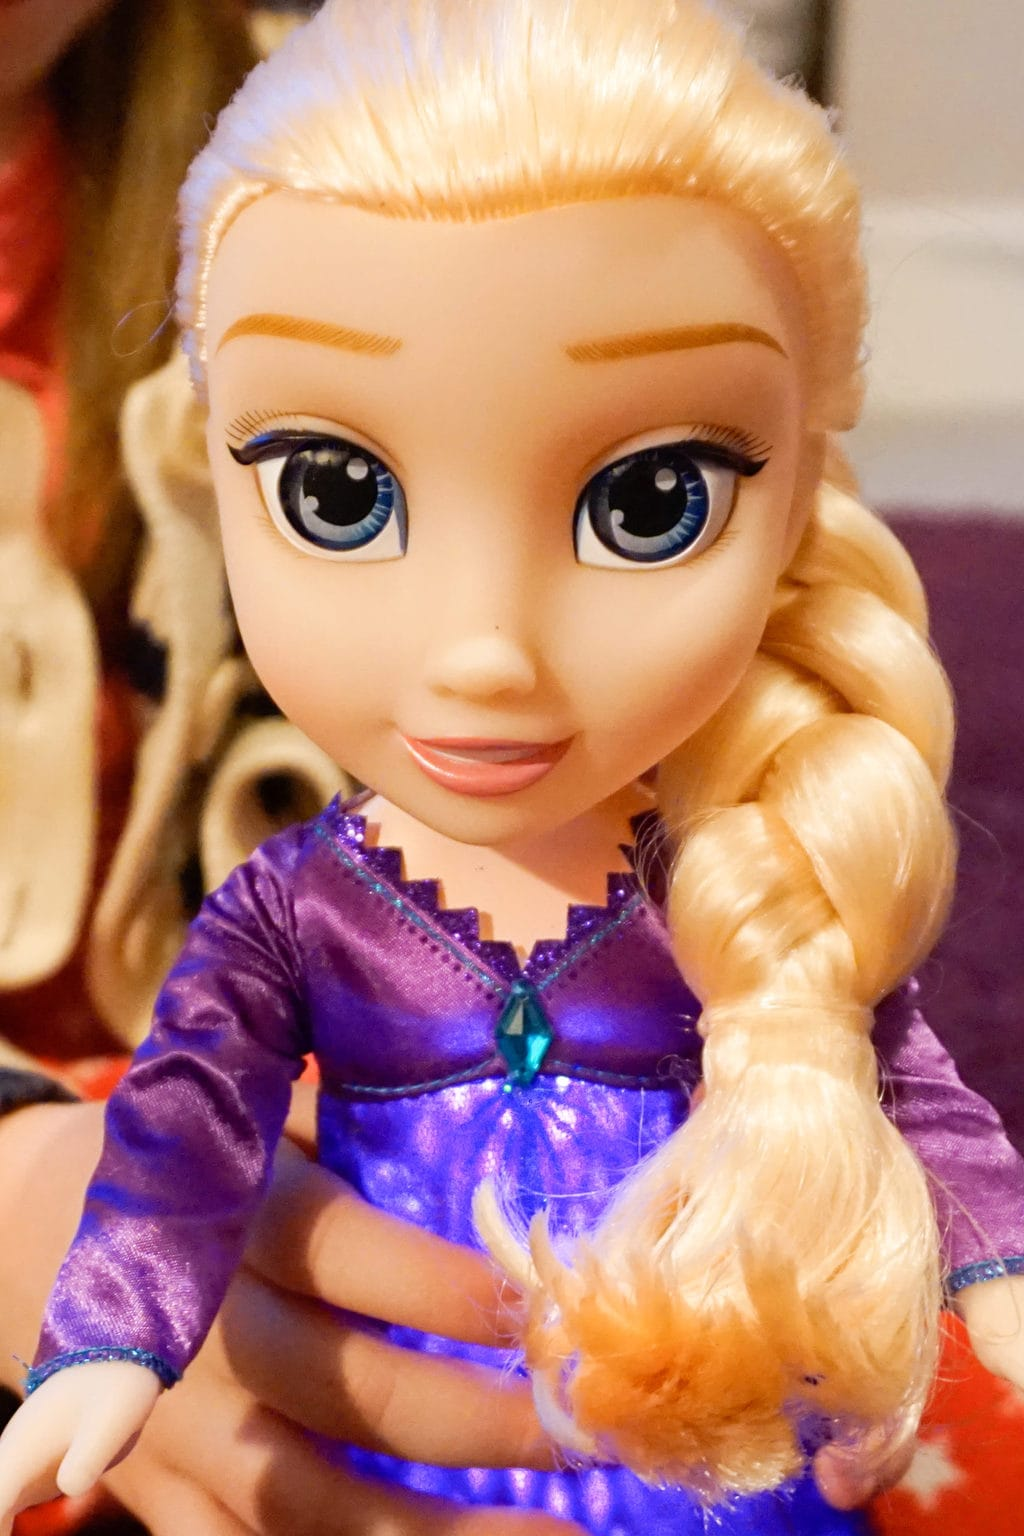 Frozen 2 Singing anna doll review